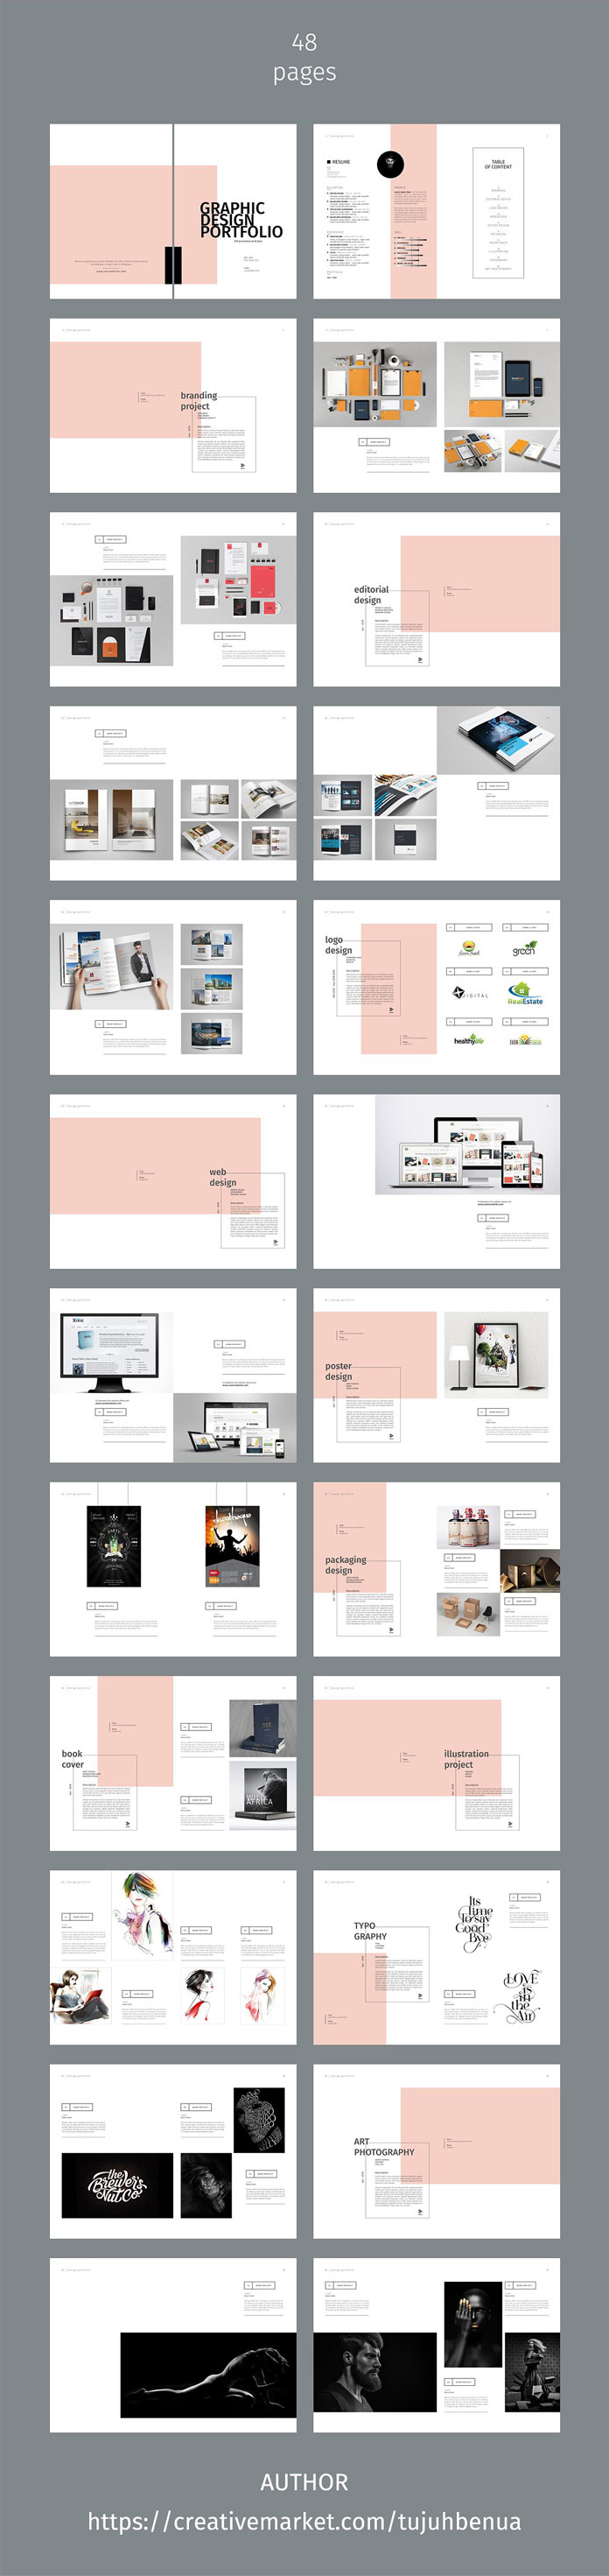 Graphic design portfolio template with 48 pages.